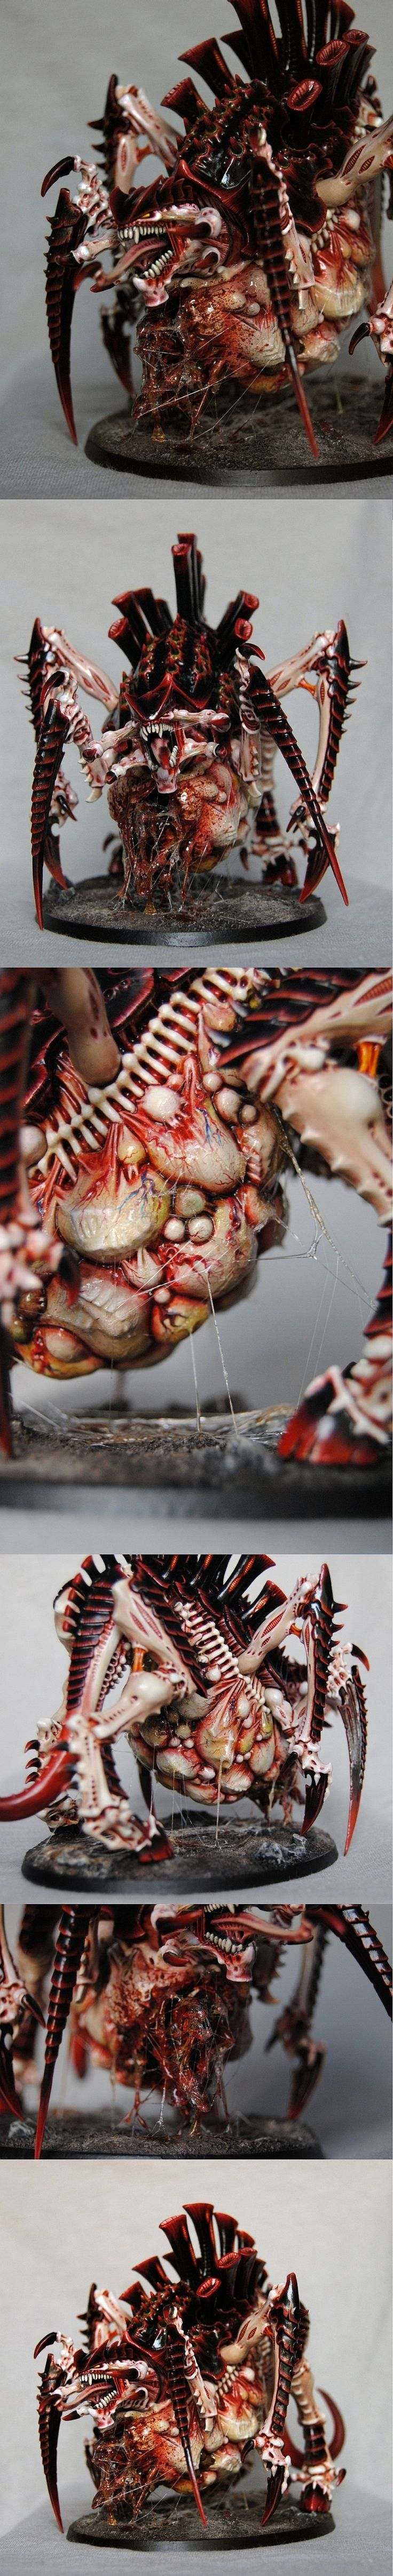 Tyranid Tervigon - Wonderful attention to detail, and disgusting to boot!